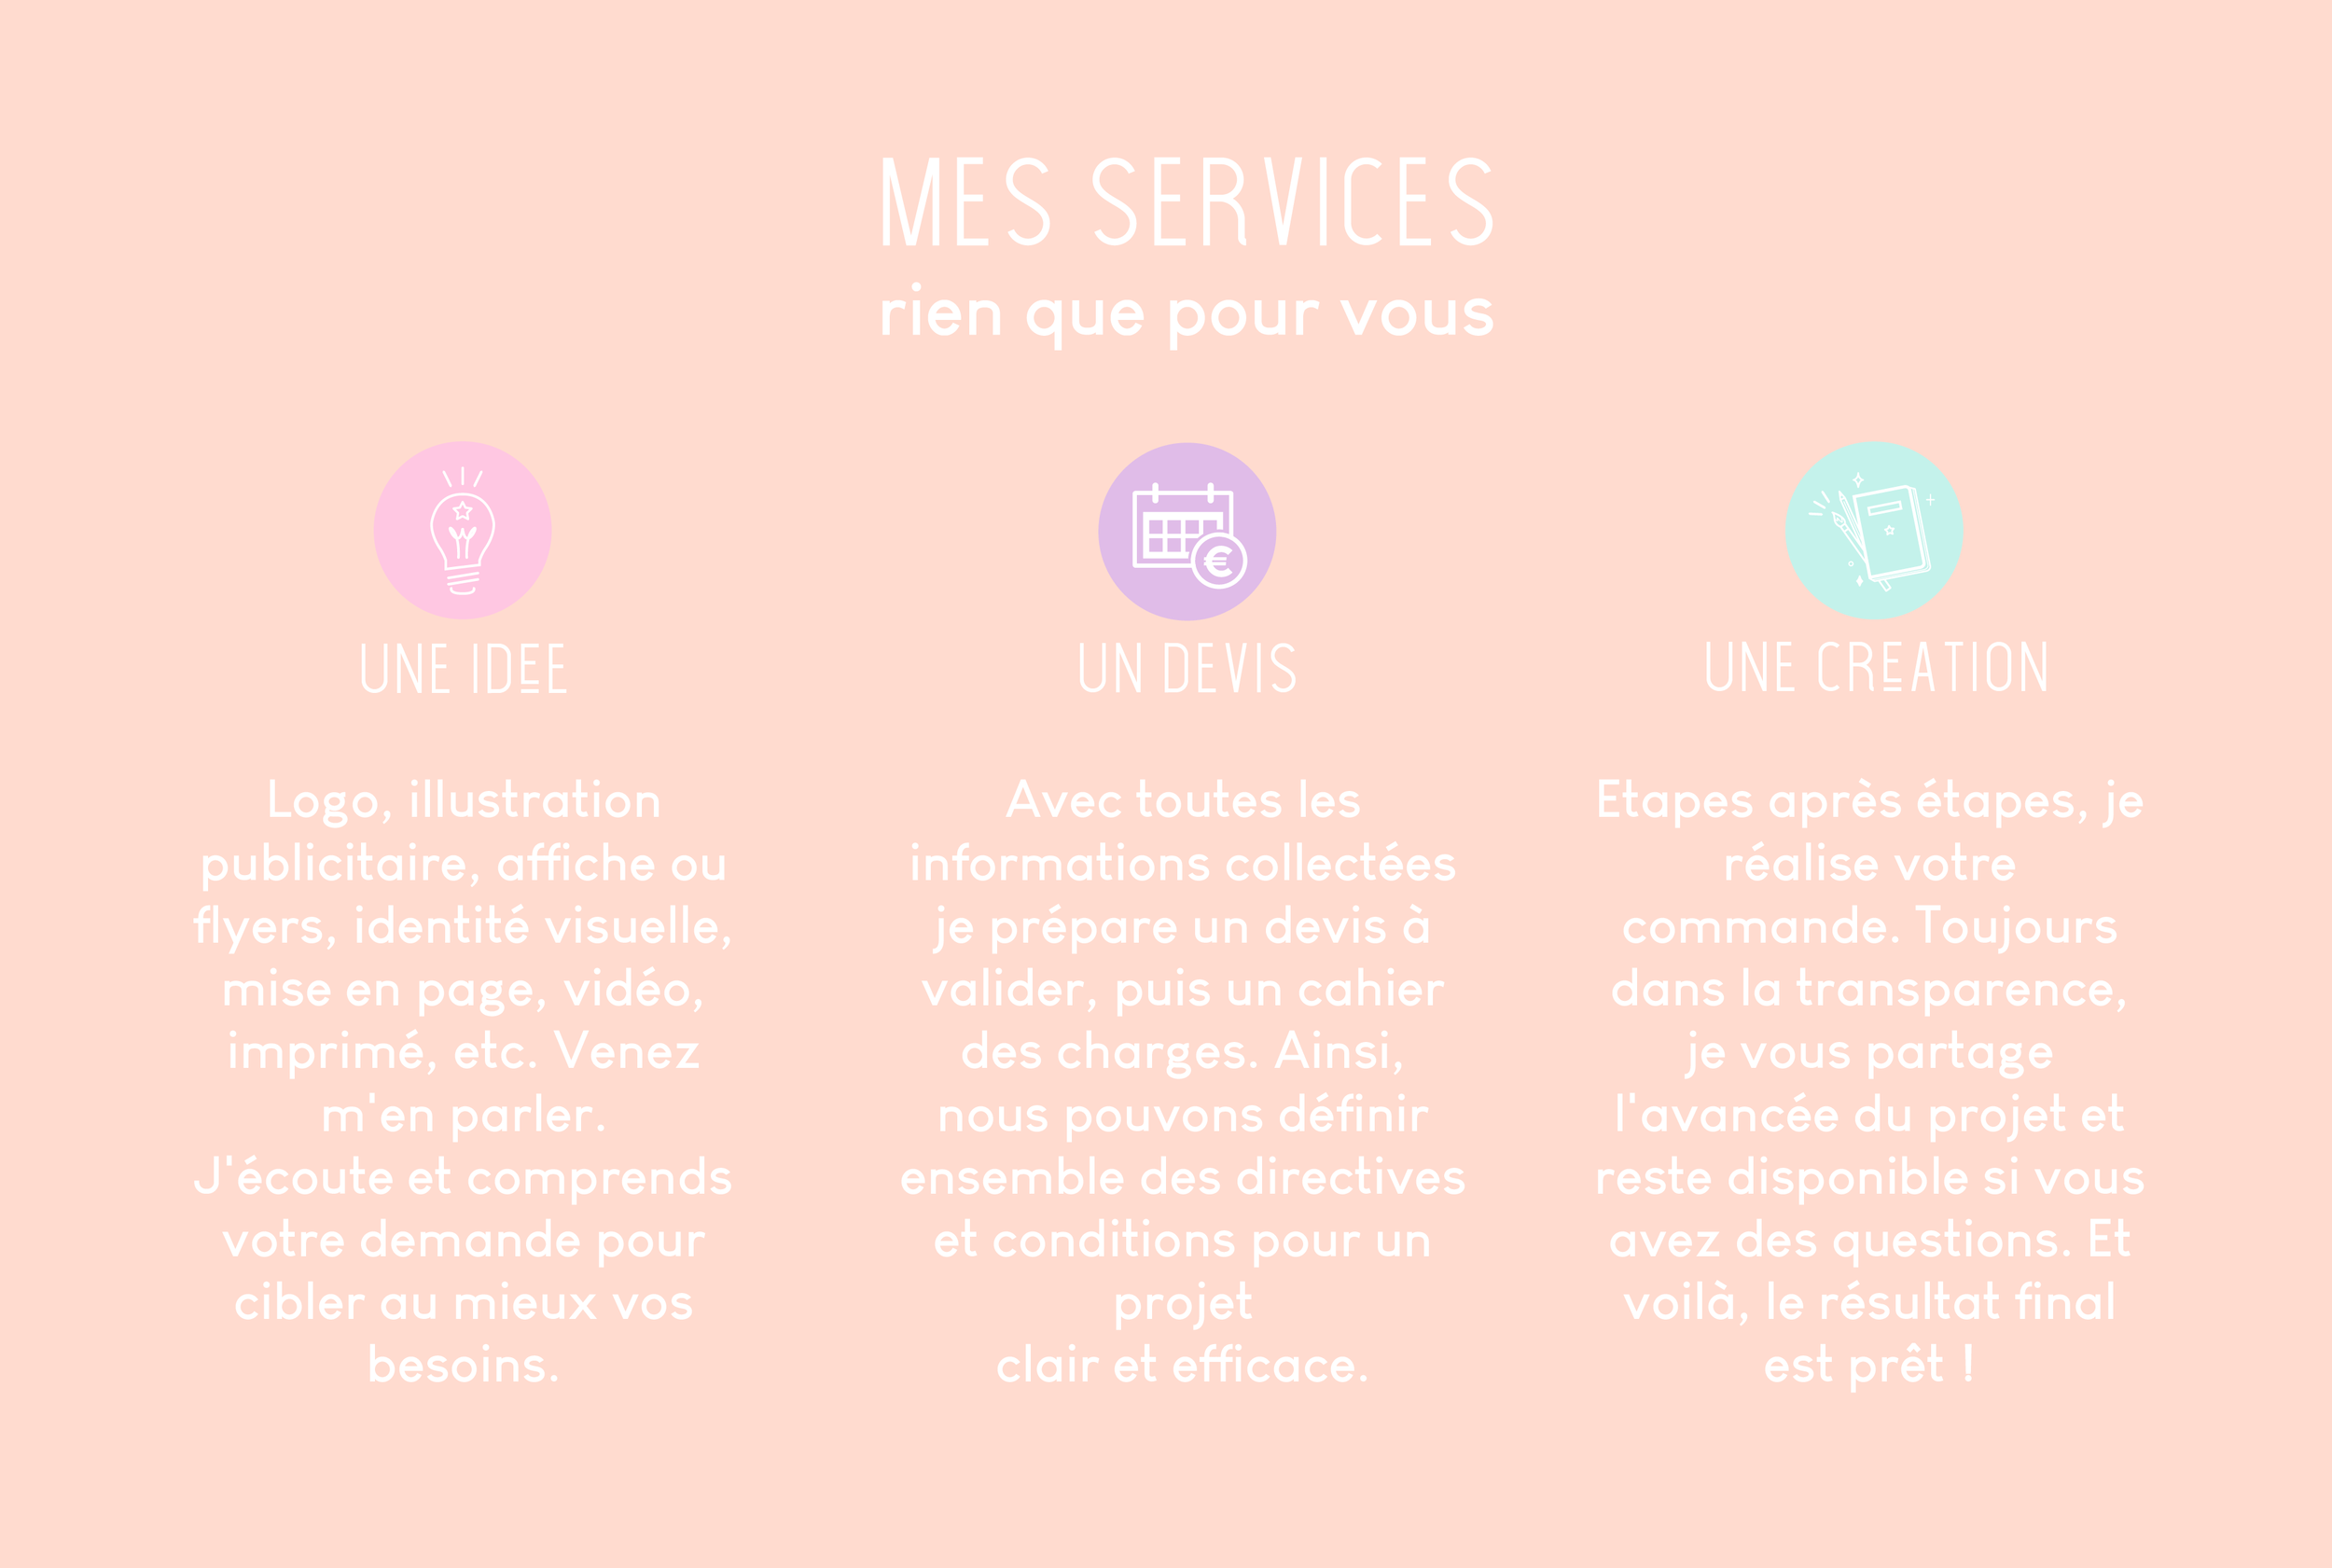 services-02.png